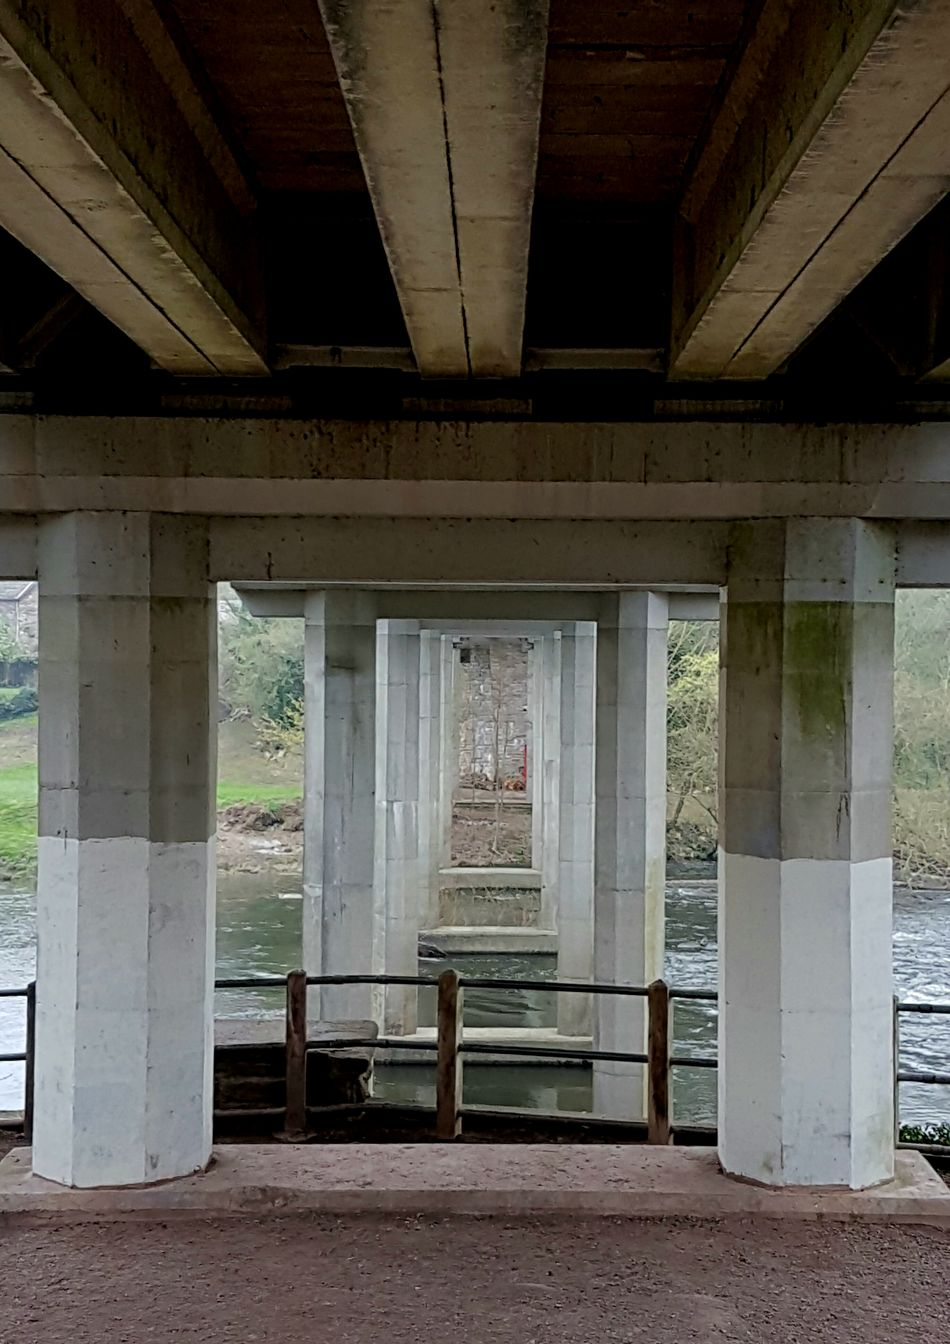 Built Structure Architecture Architectural Column No People Bridge - Man Made Structure Underneath Day Concrete Bridge Steel Beams. Symmetry